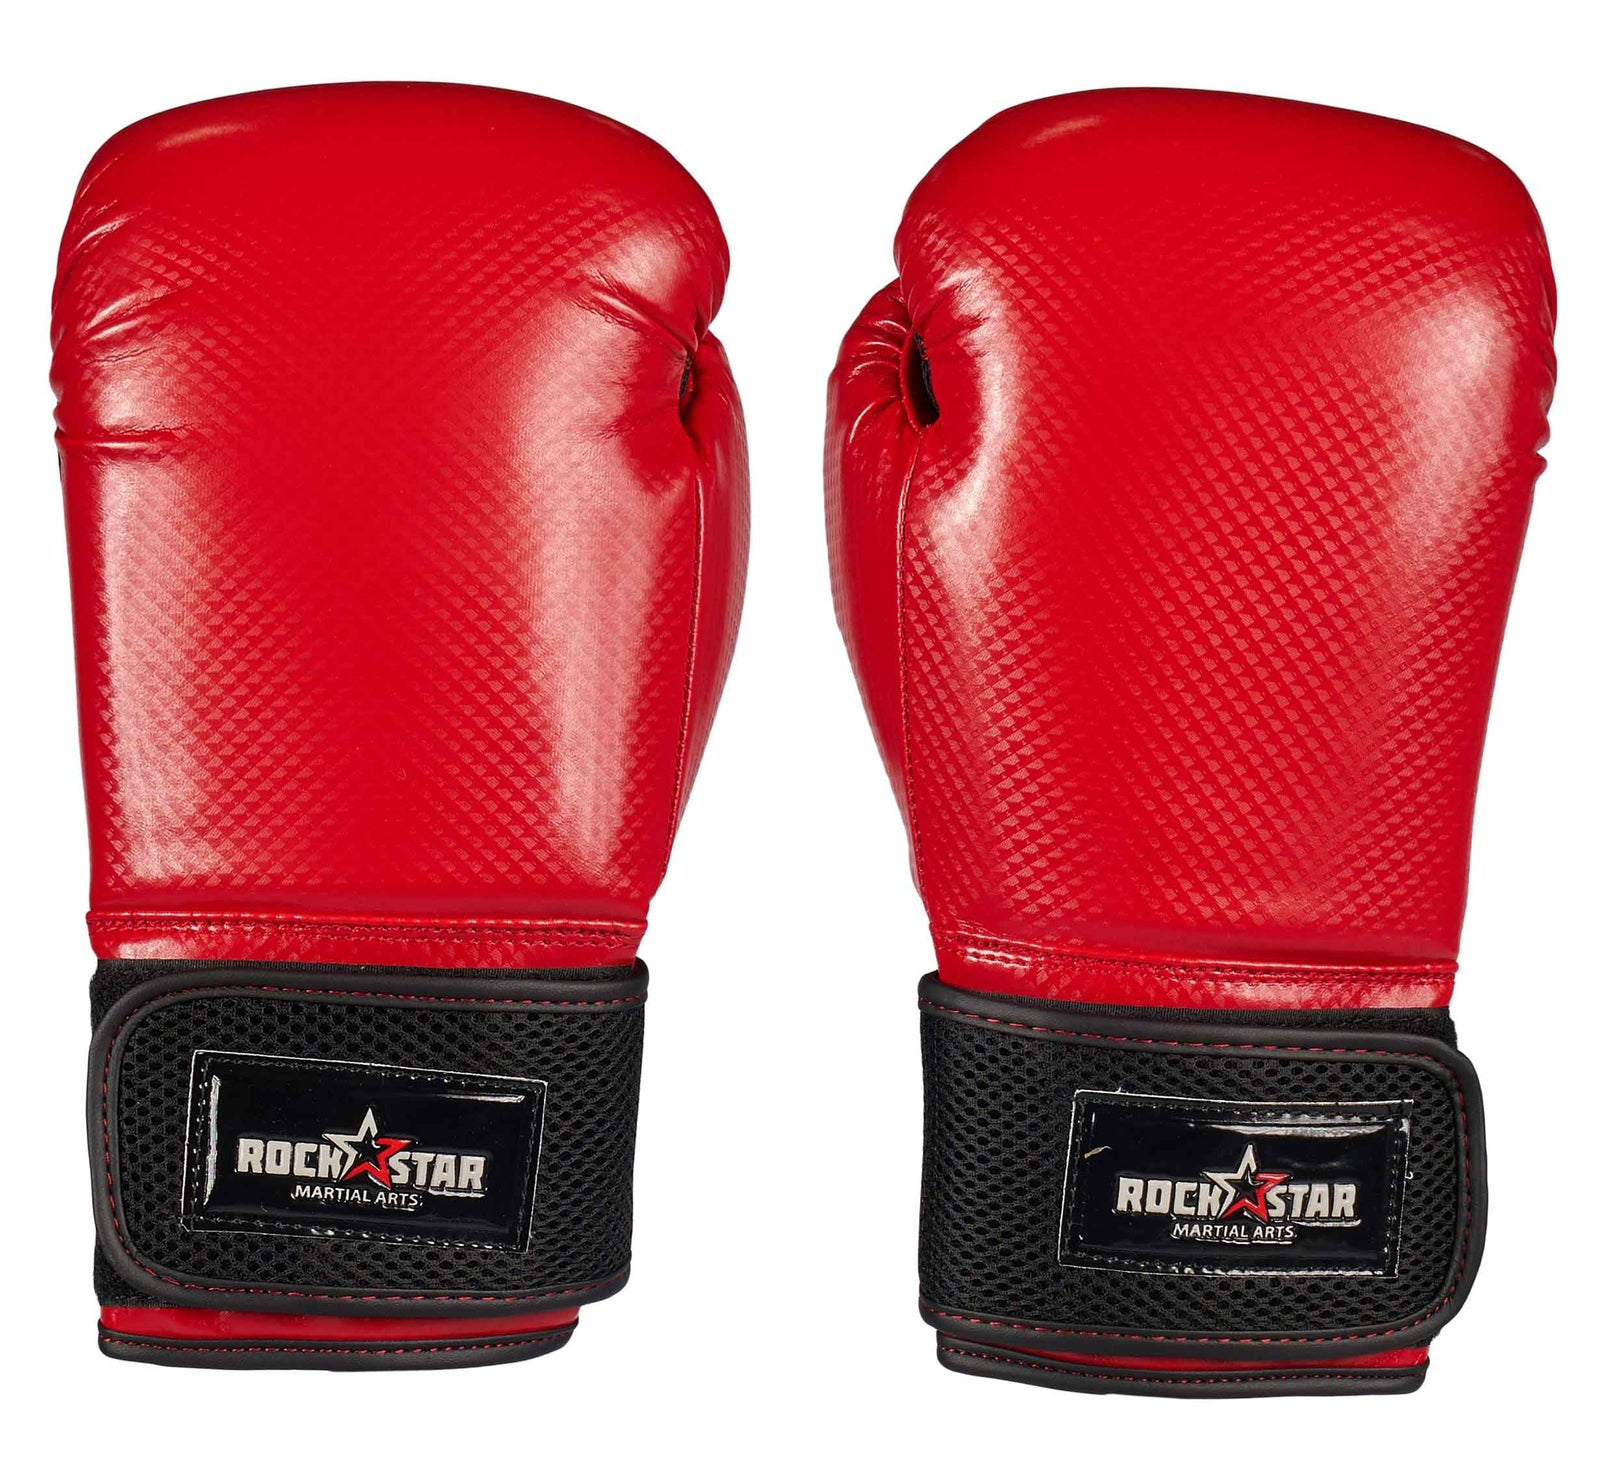 Rockstar Adult Boxing Gloves (16oz)